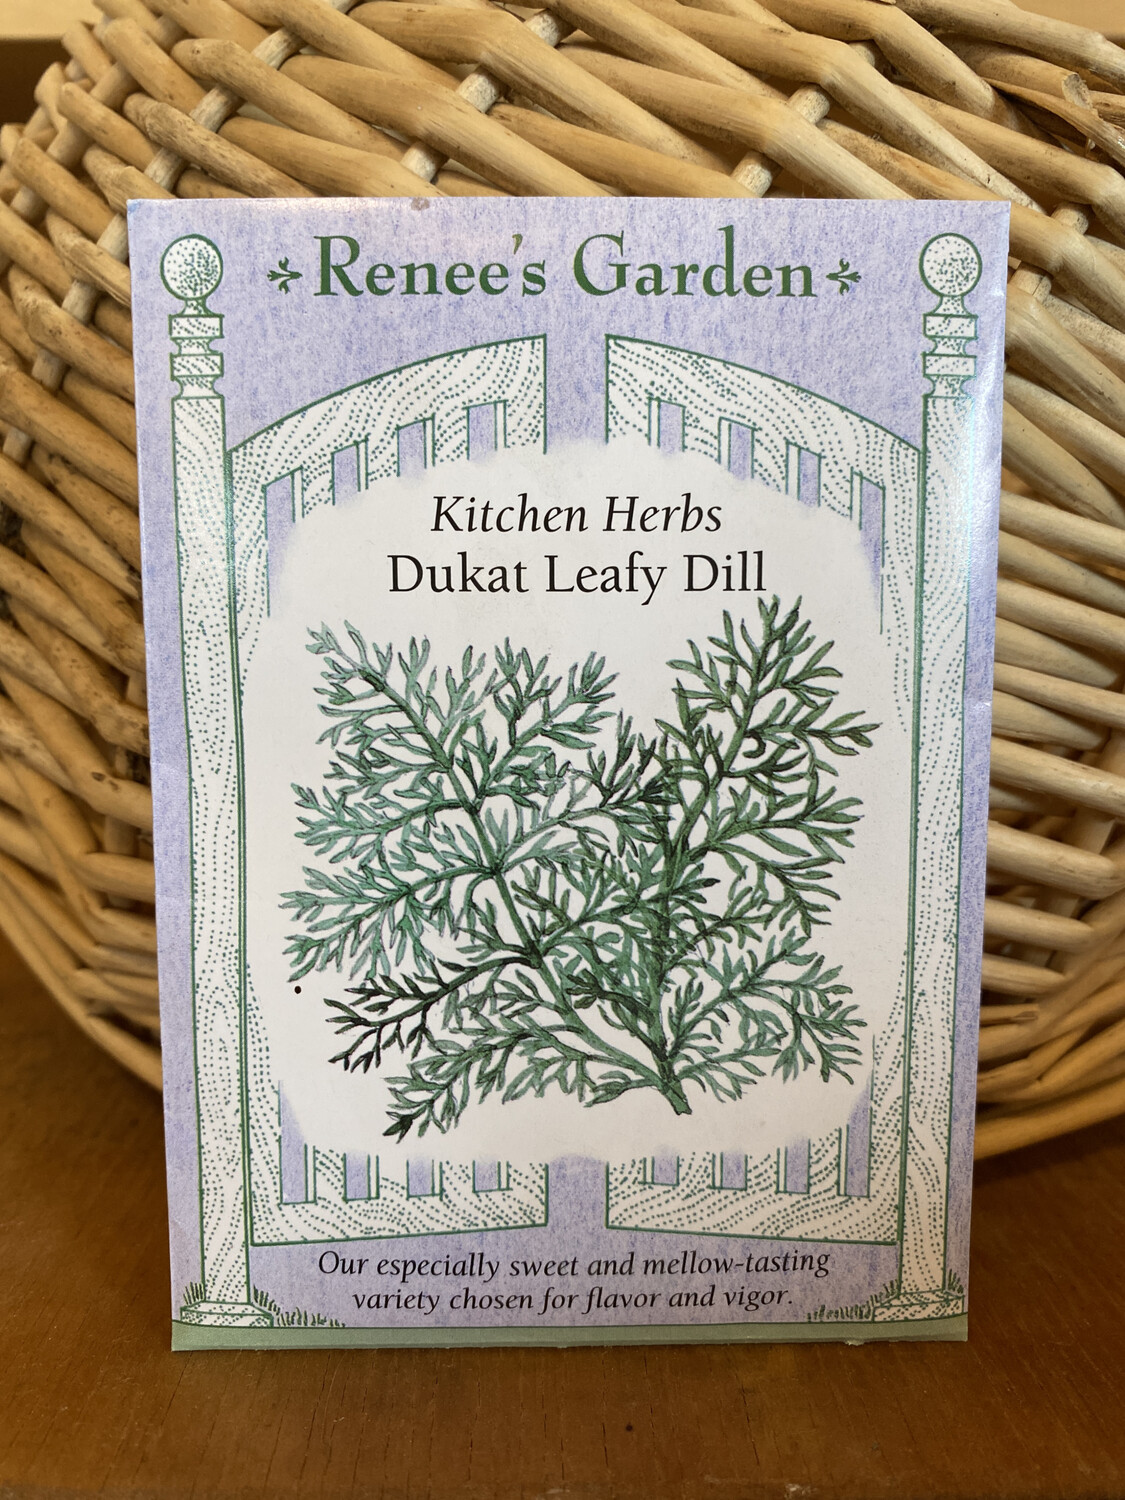 Dukat Leafy Dill | Renee's Garden Seed Pack | Past Year's Seeds | Reduced Price